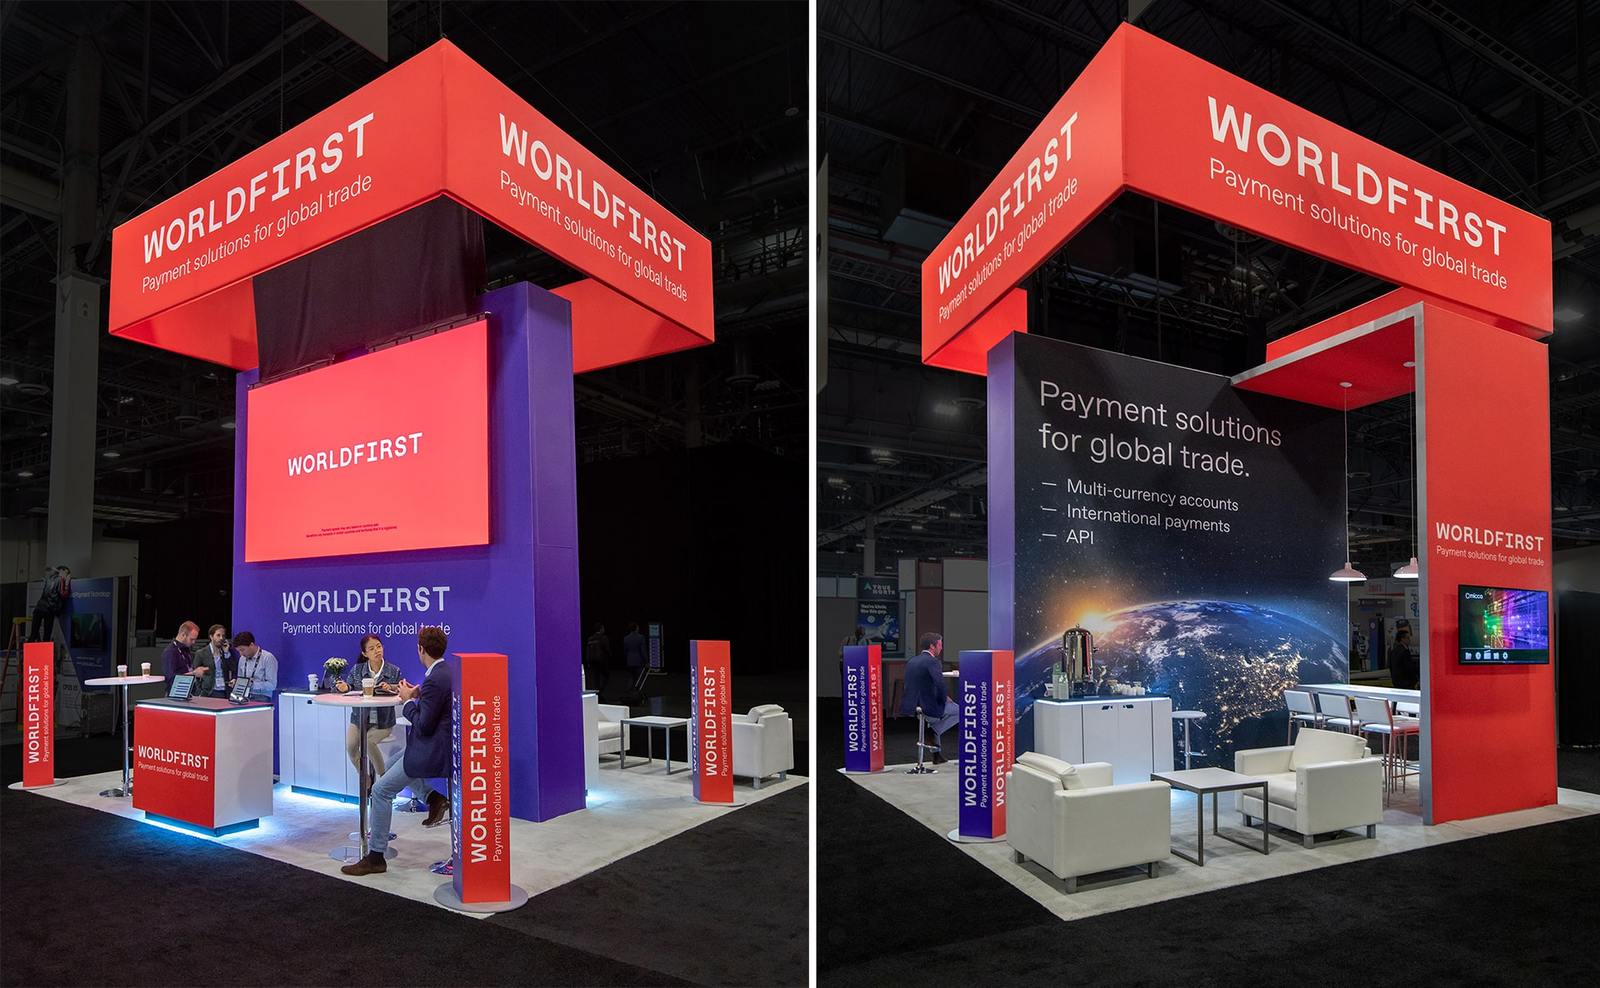 Best Expo Stands : Exhibit design ideas & inspiration trade show displays